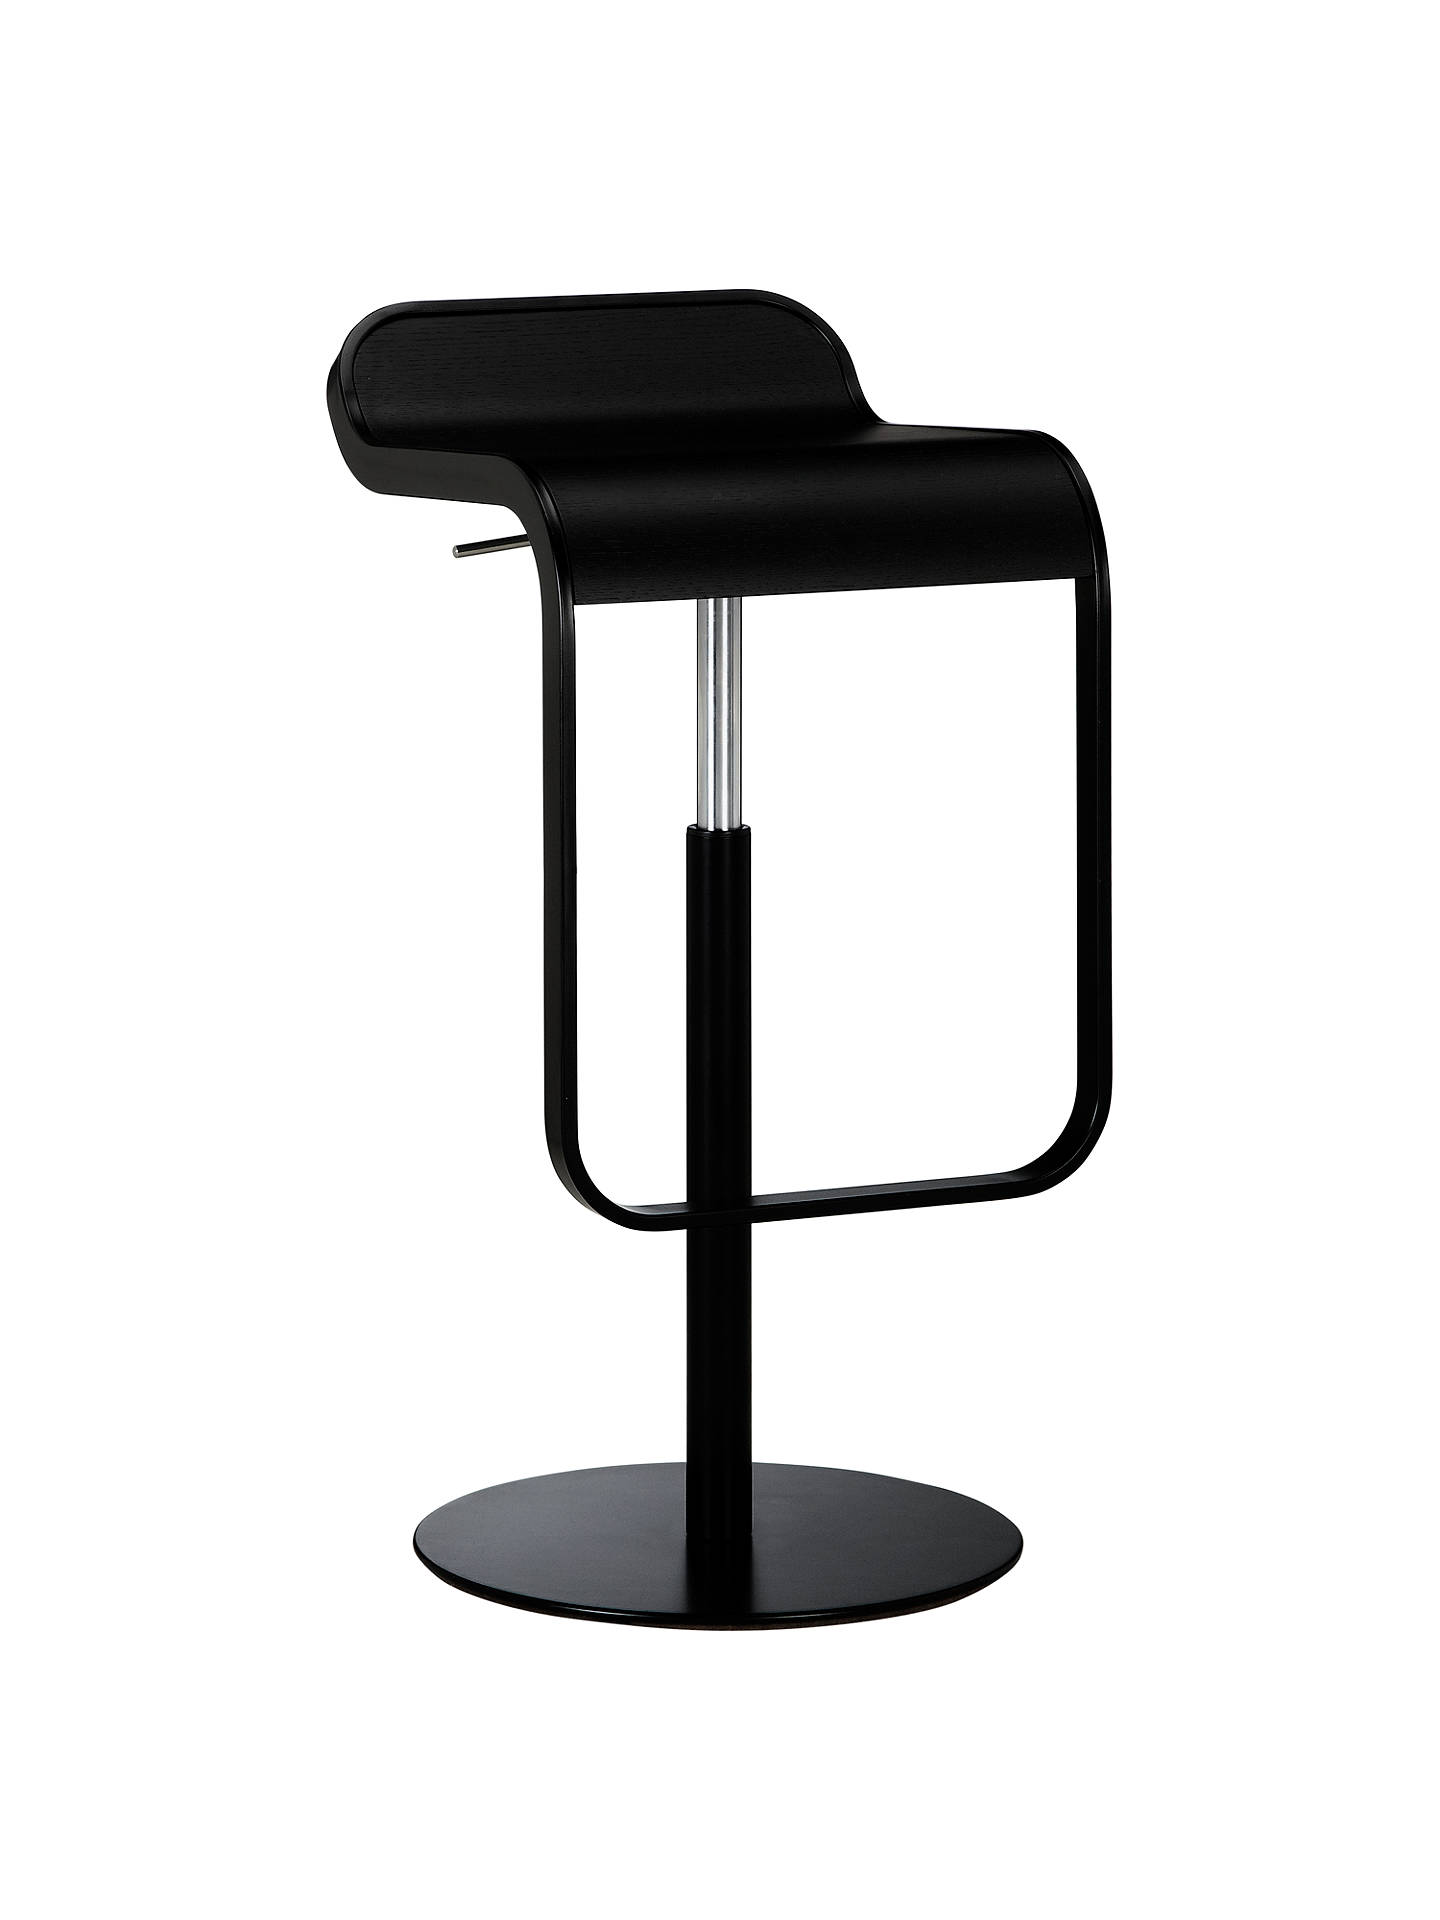 la palma lem bar stool black at john lewis partners. Black Bedroom Furniture Sets. Home Design Ideas